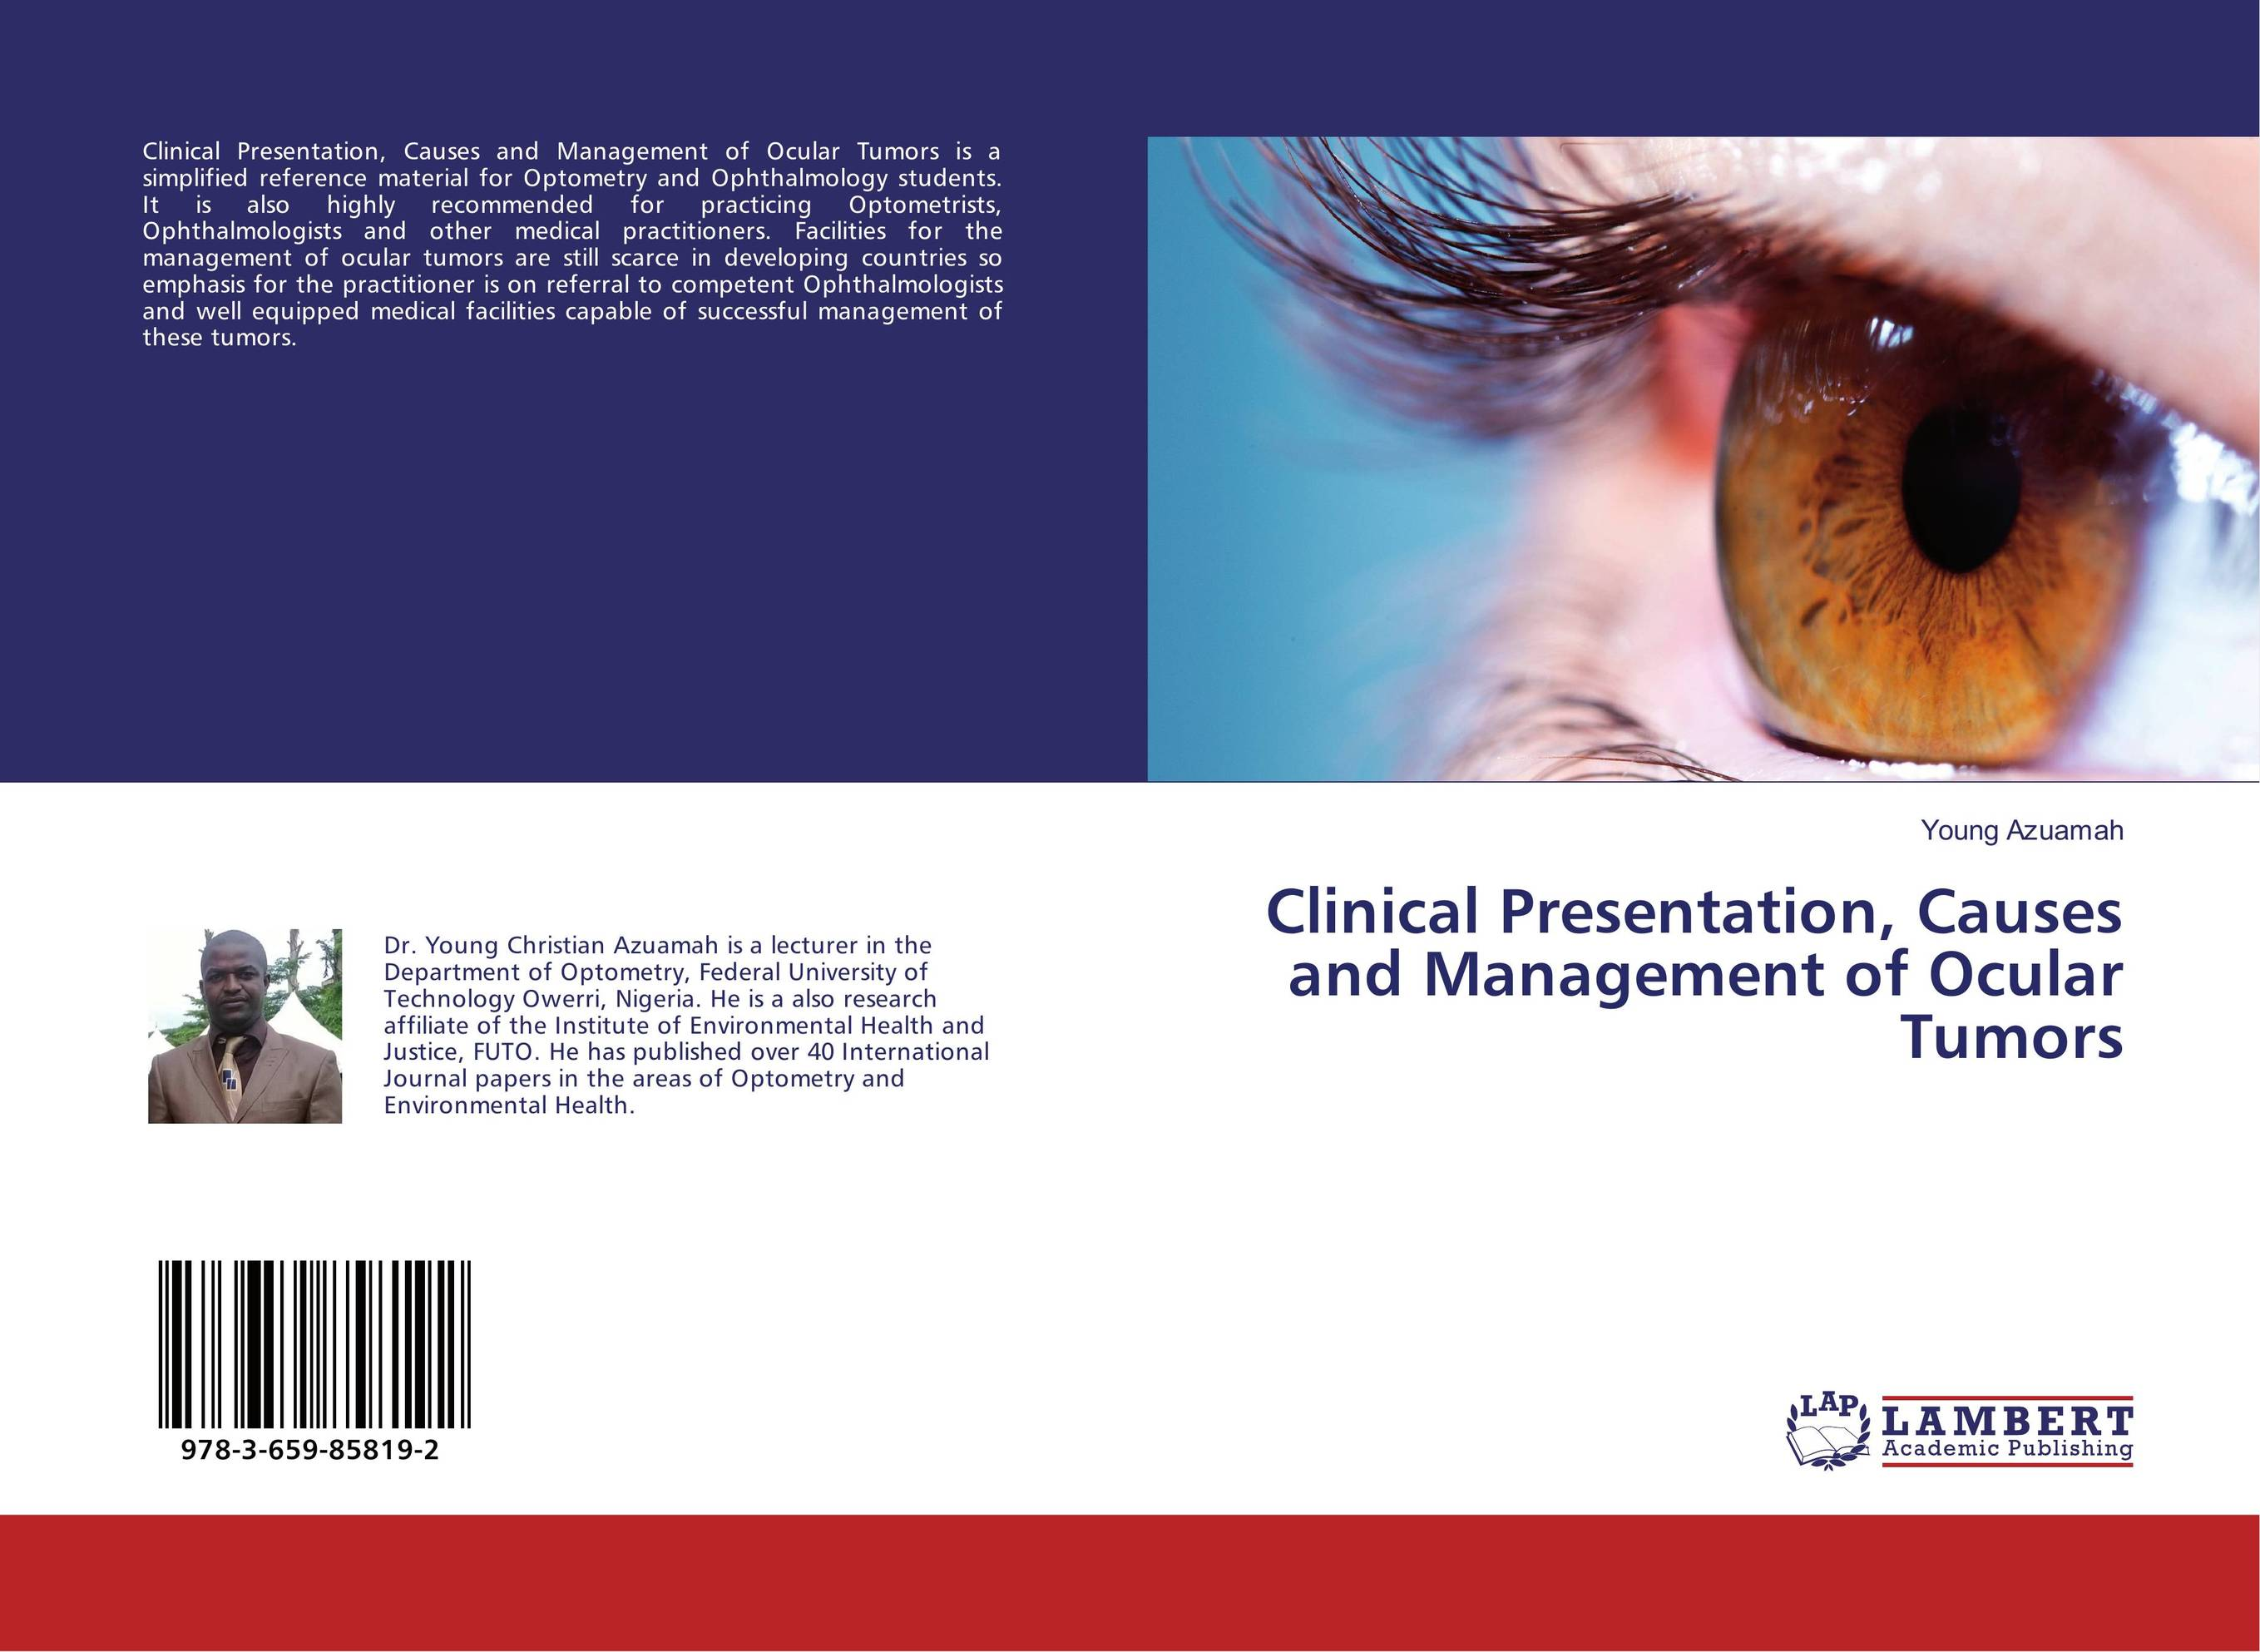 Clinical Presentation, Causes and Management of Ocular Tumors